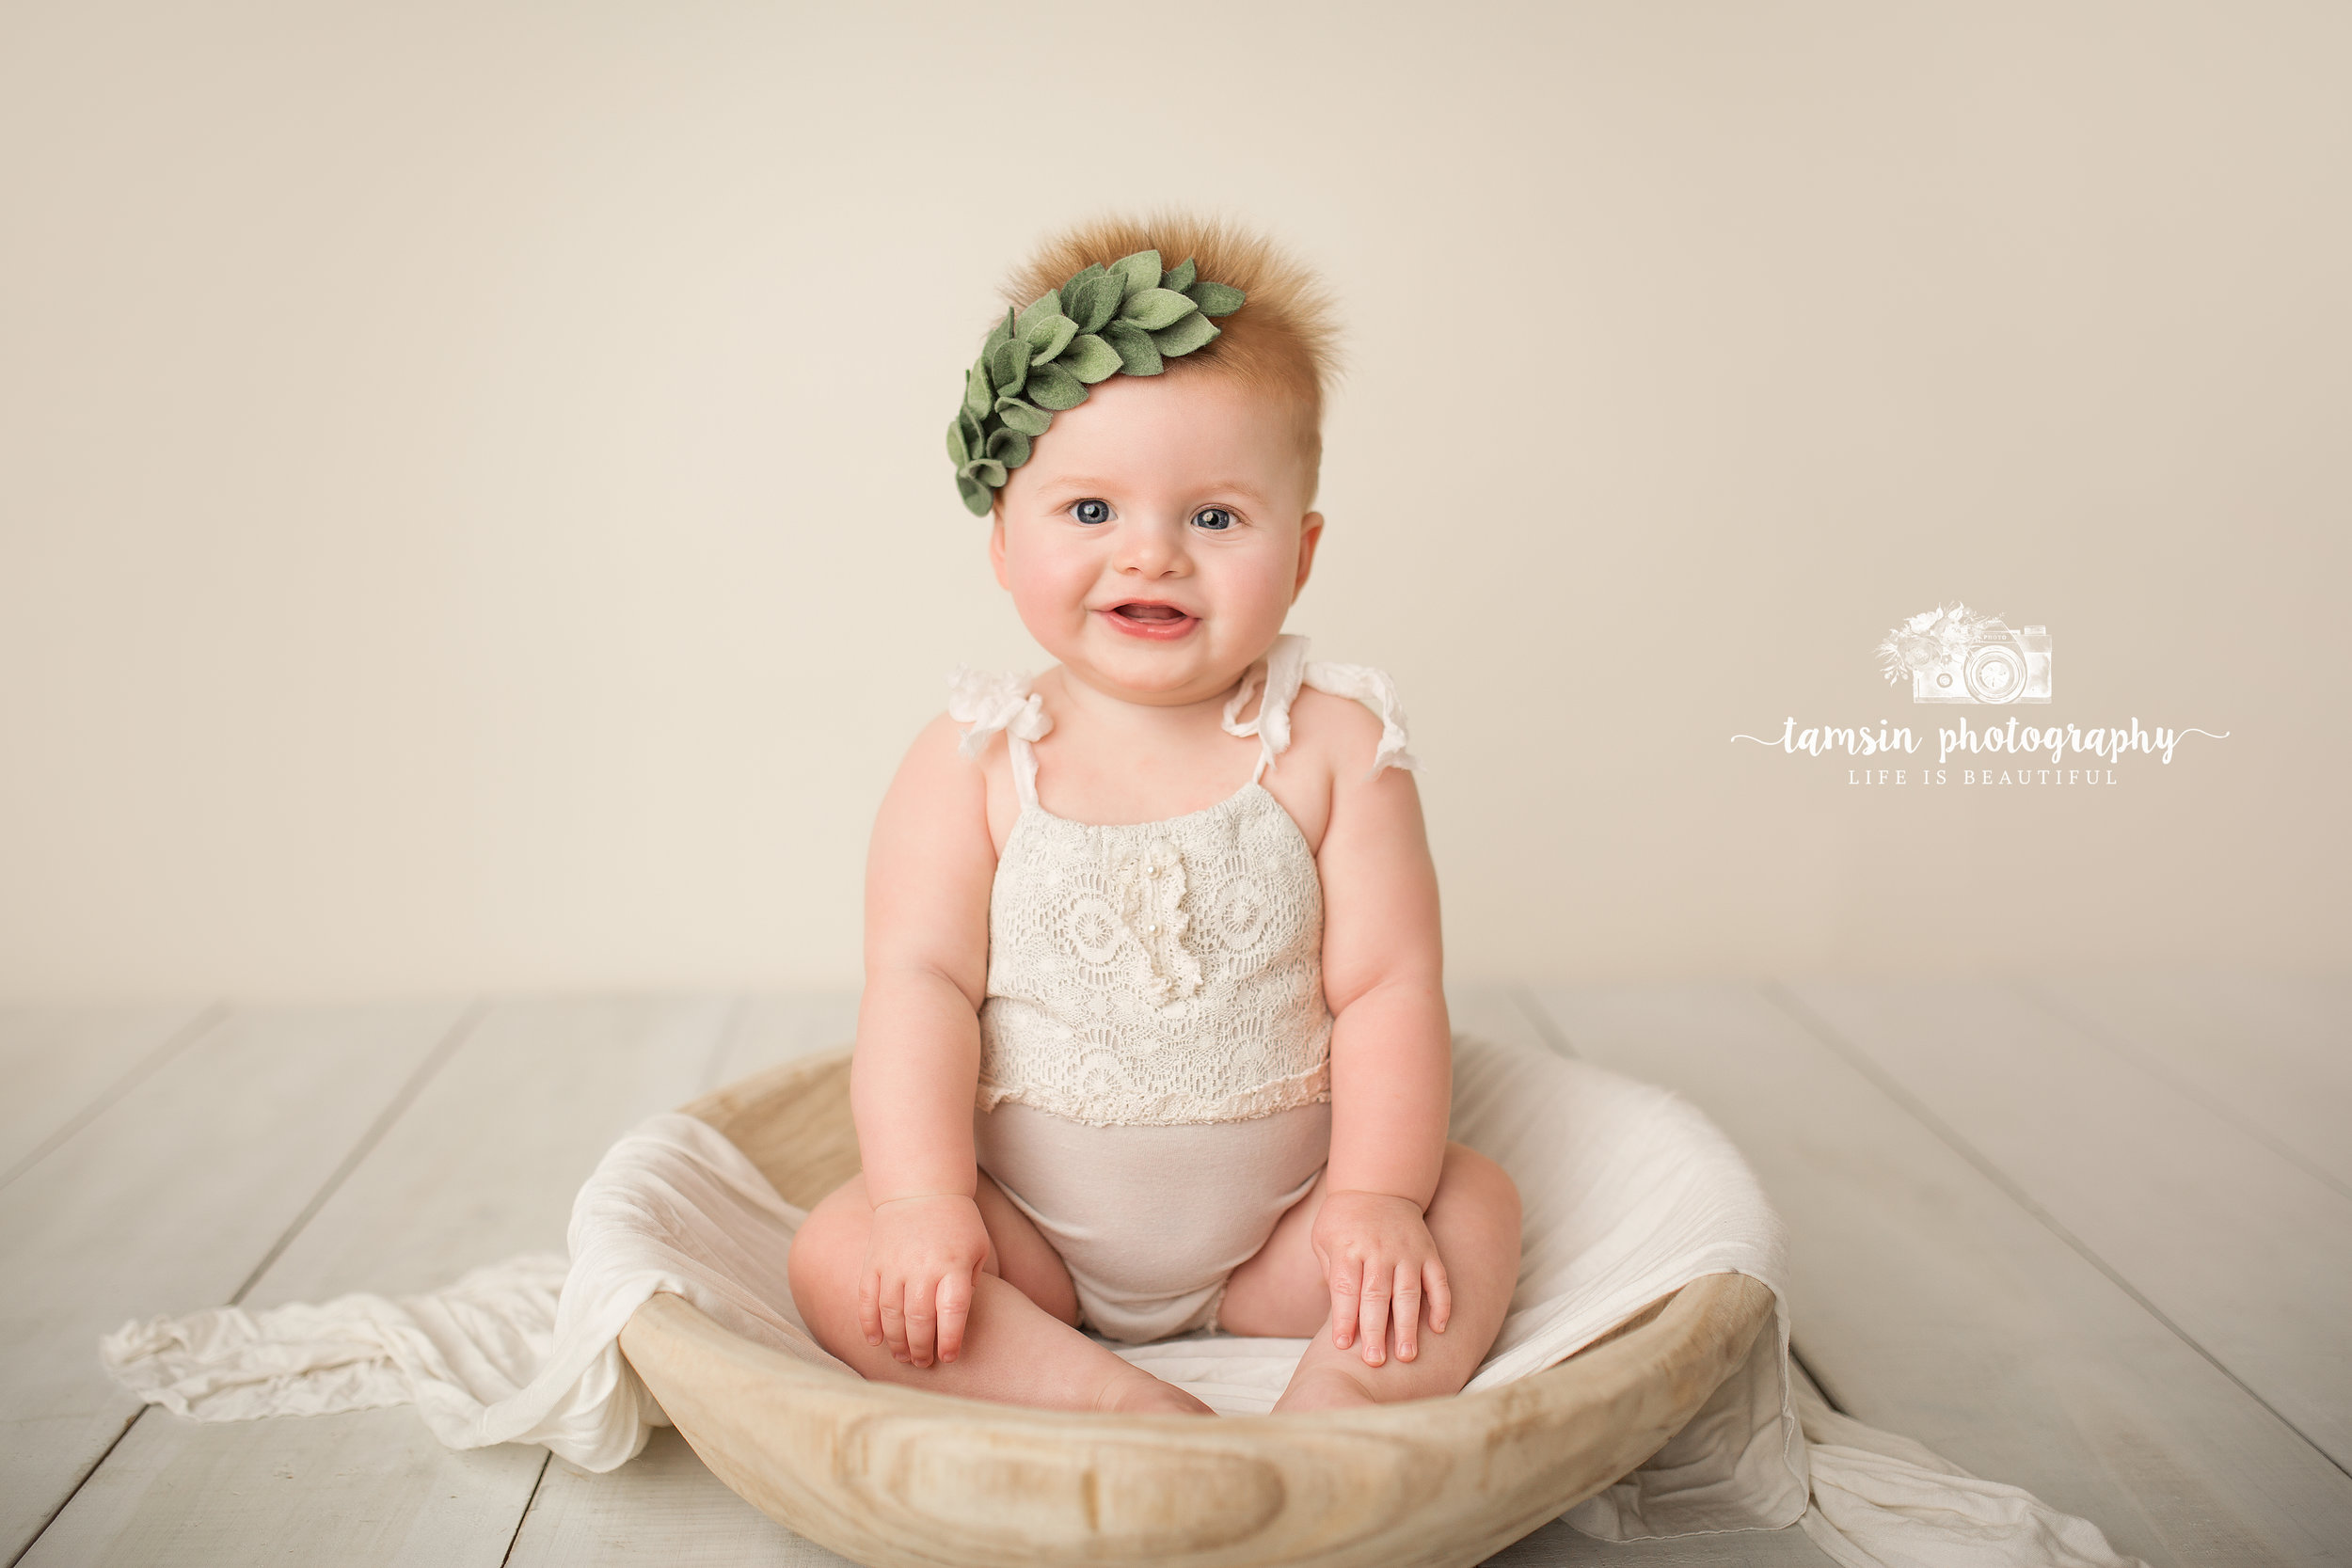 Six Month Sitter Portrait Photography Bone Bowl Studio Tamsin.jpg